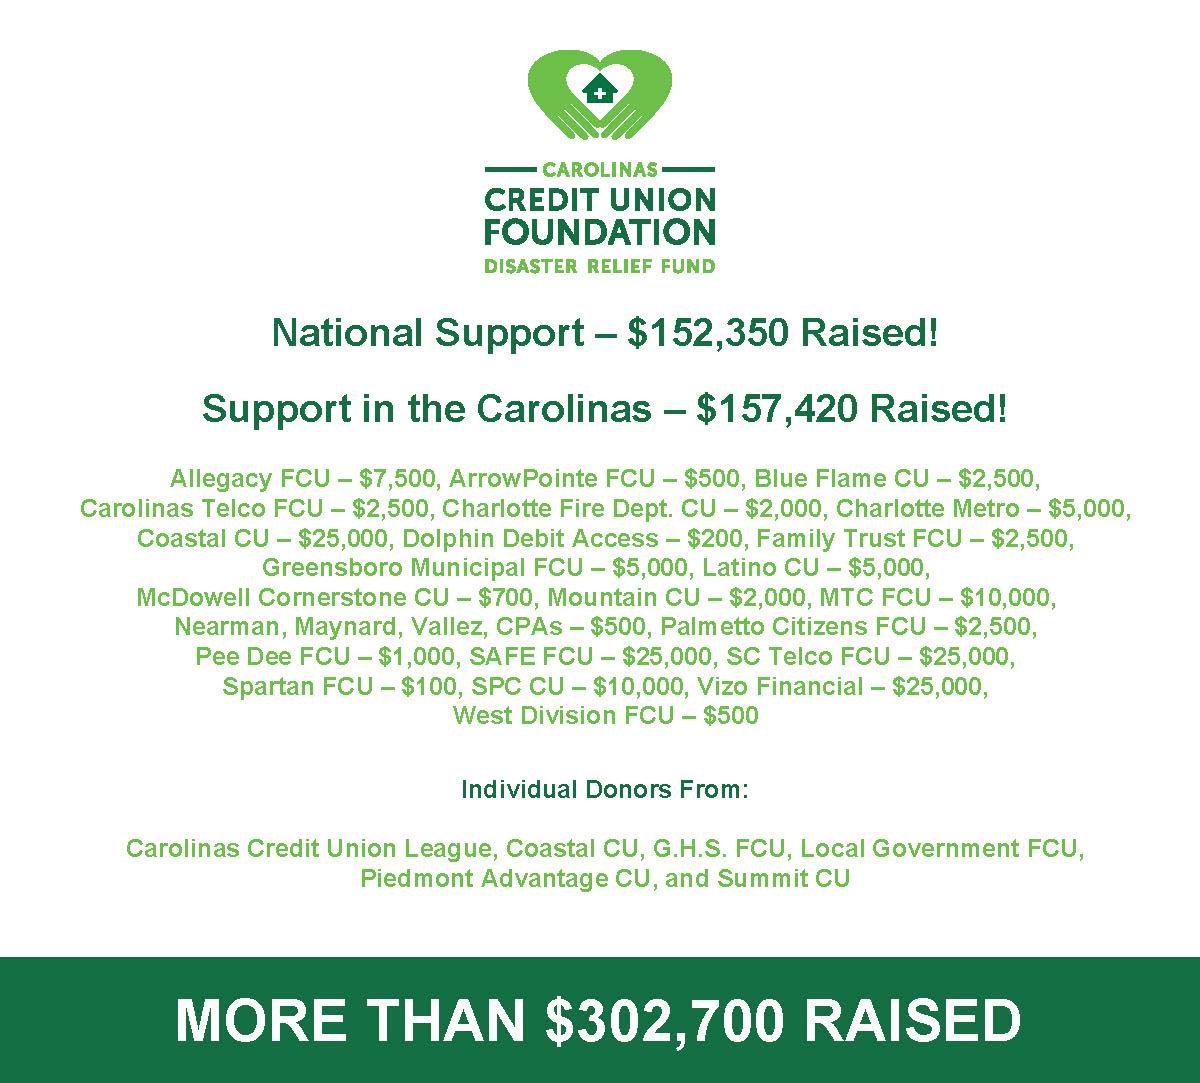 image of donors to disaster relief fund